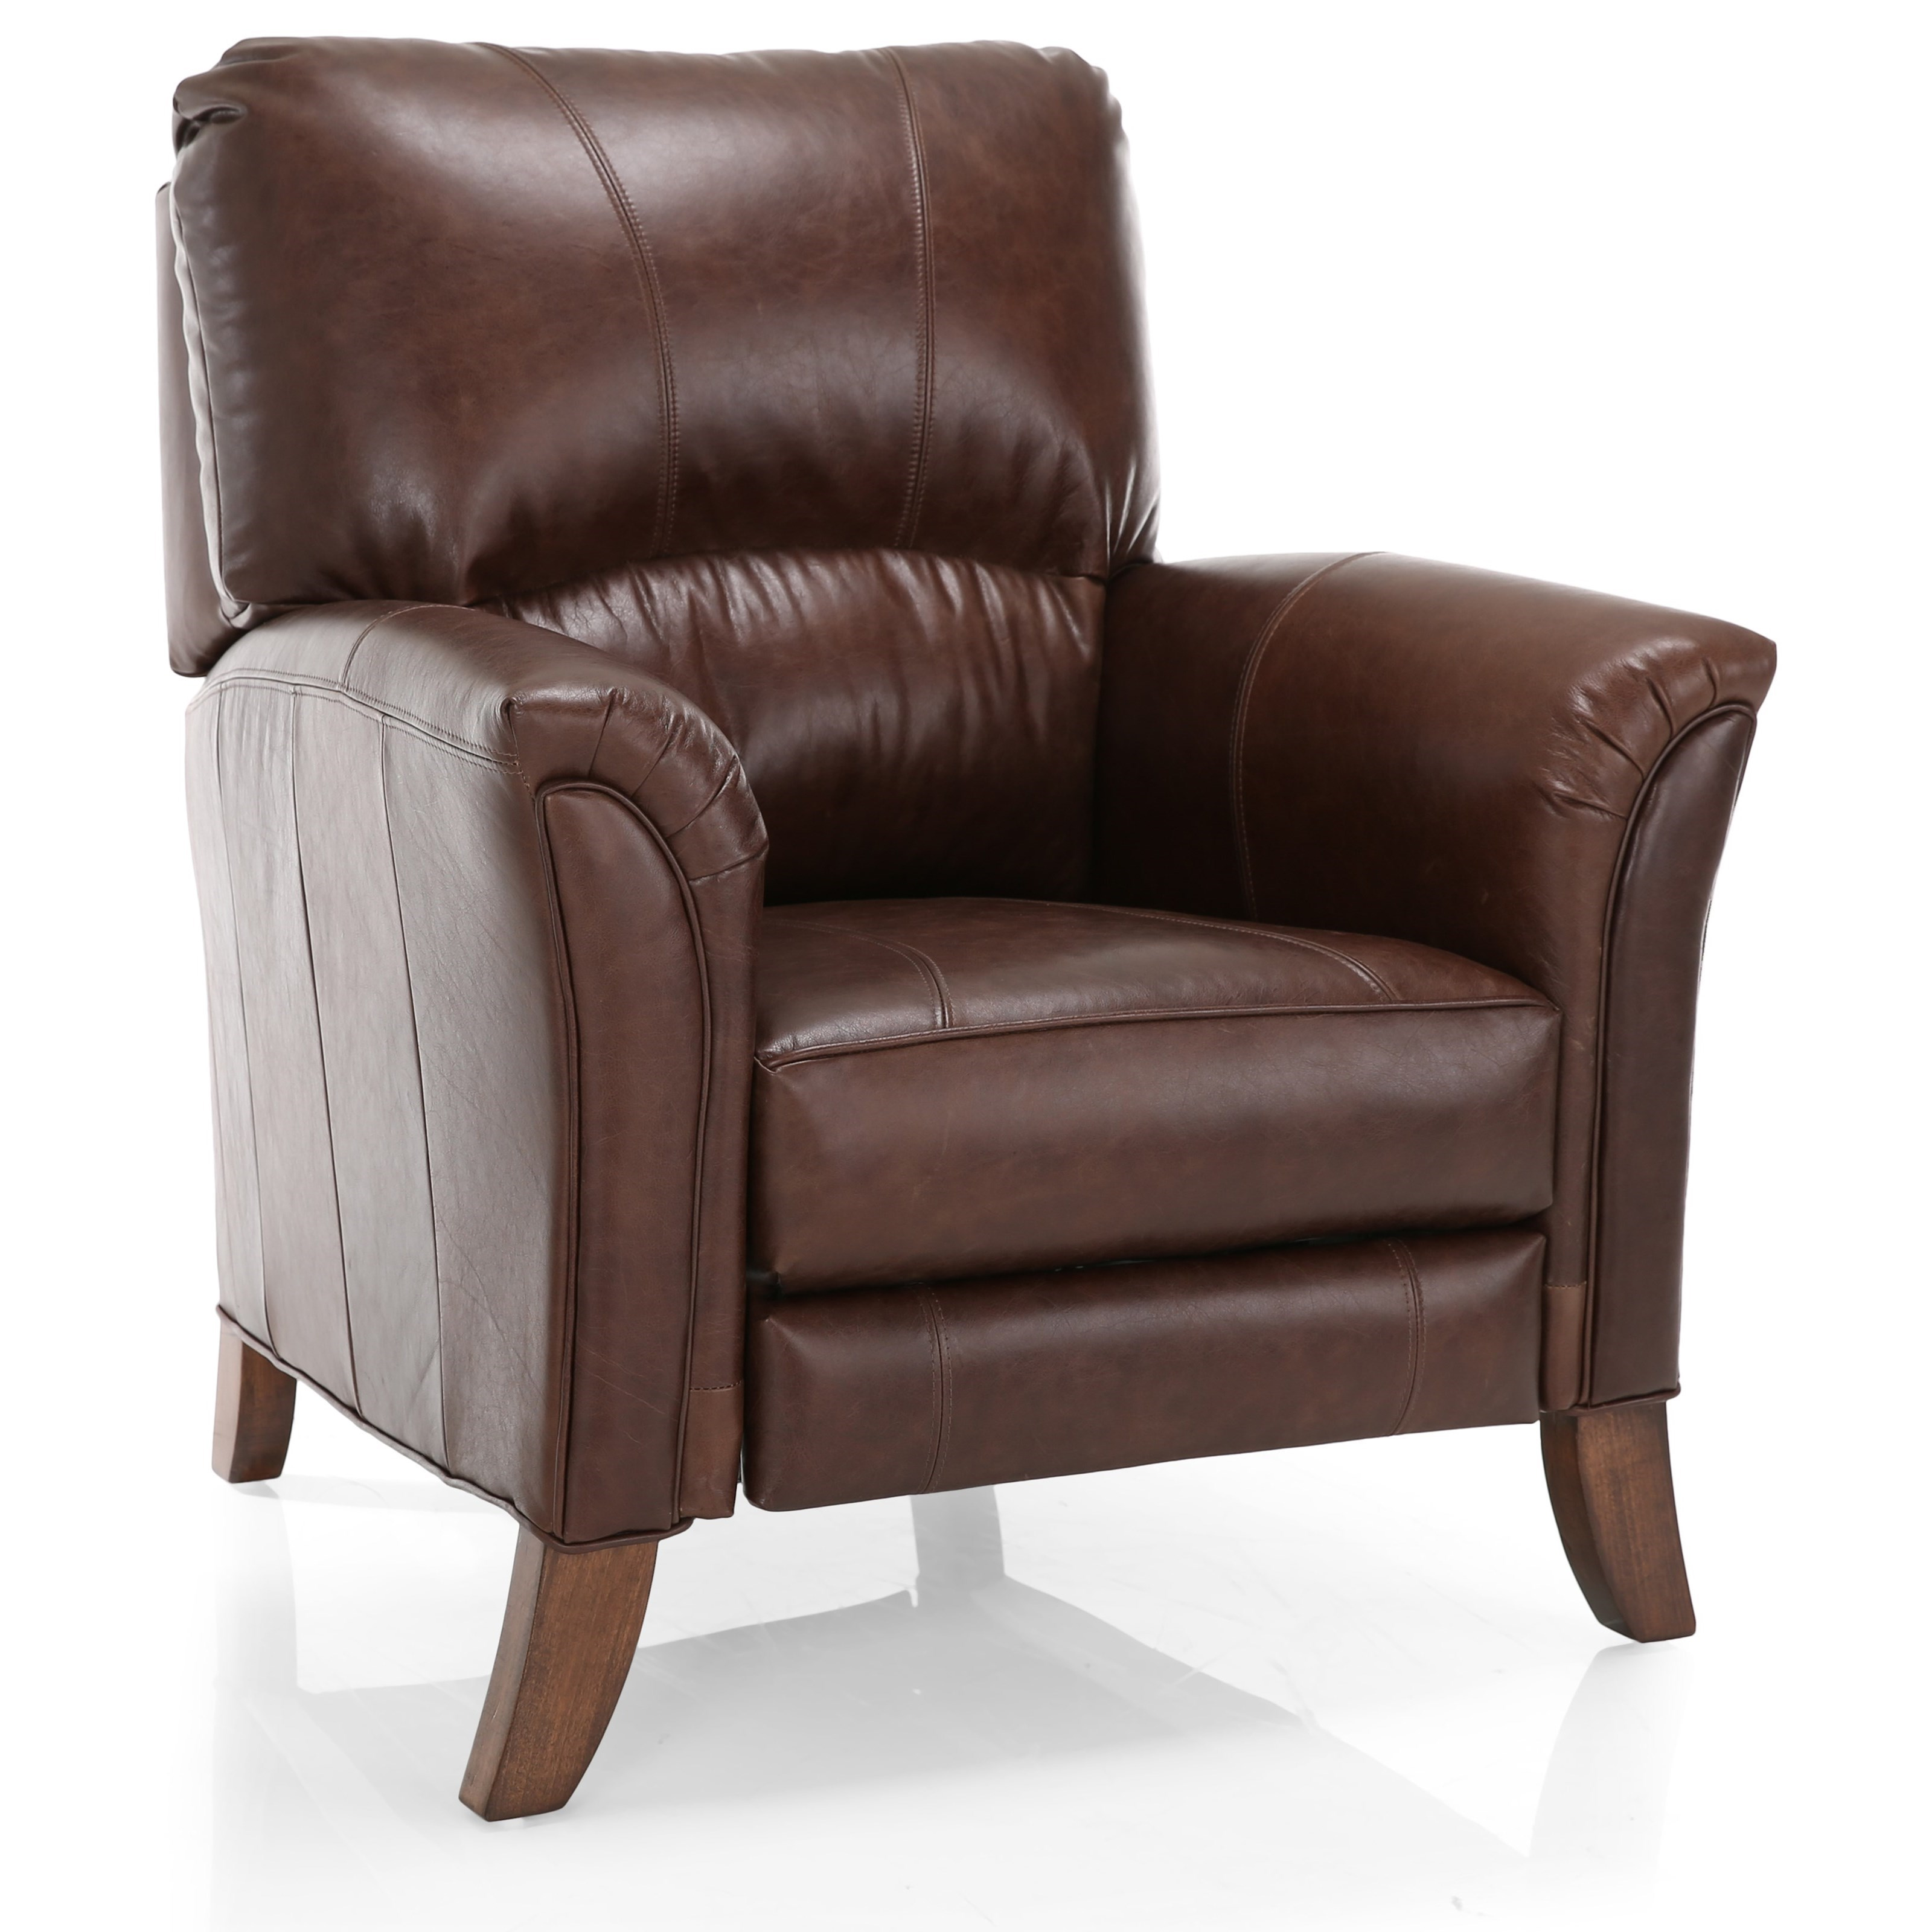 3450 Push Back Chair by Decor-Rest at Fine Home Furnishings